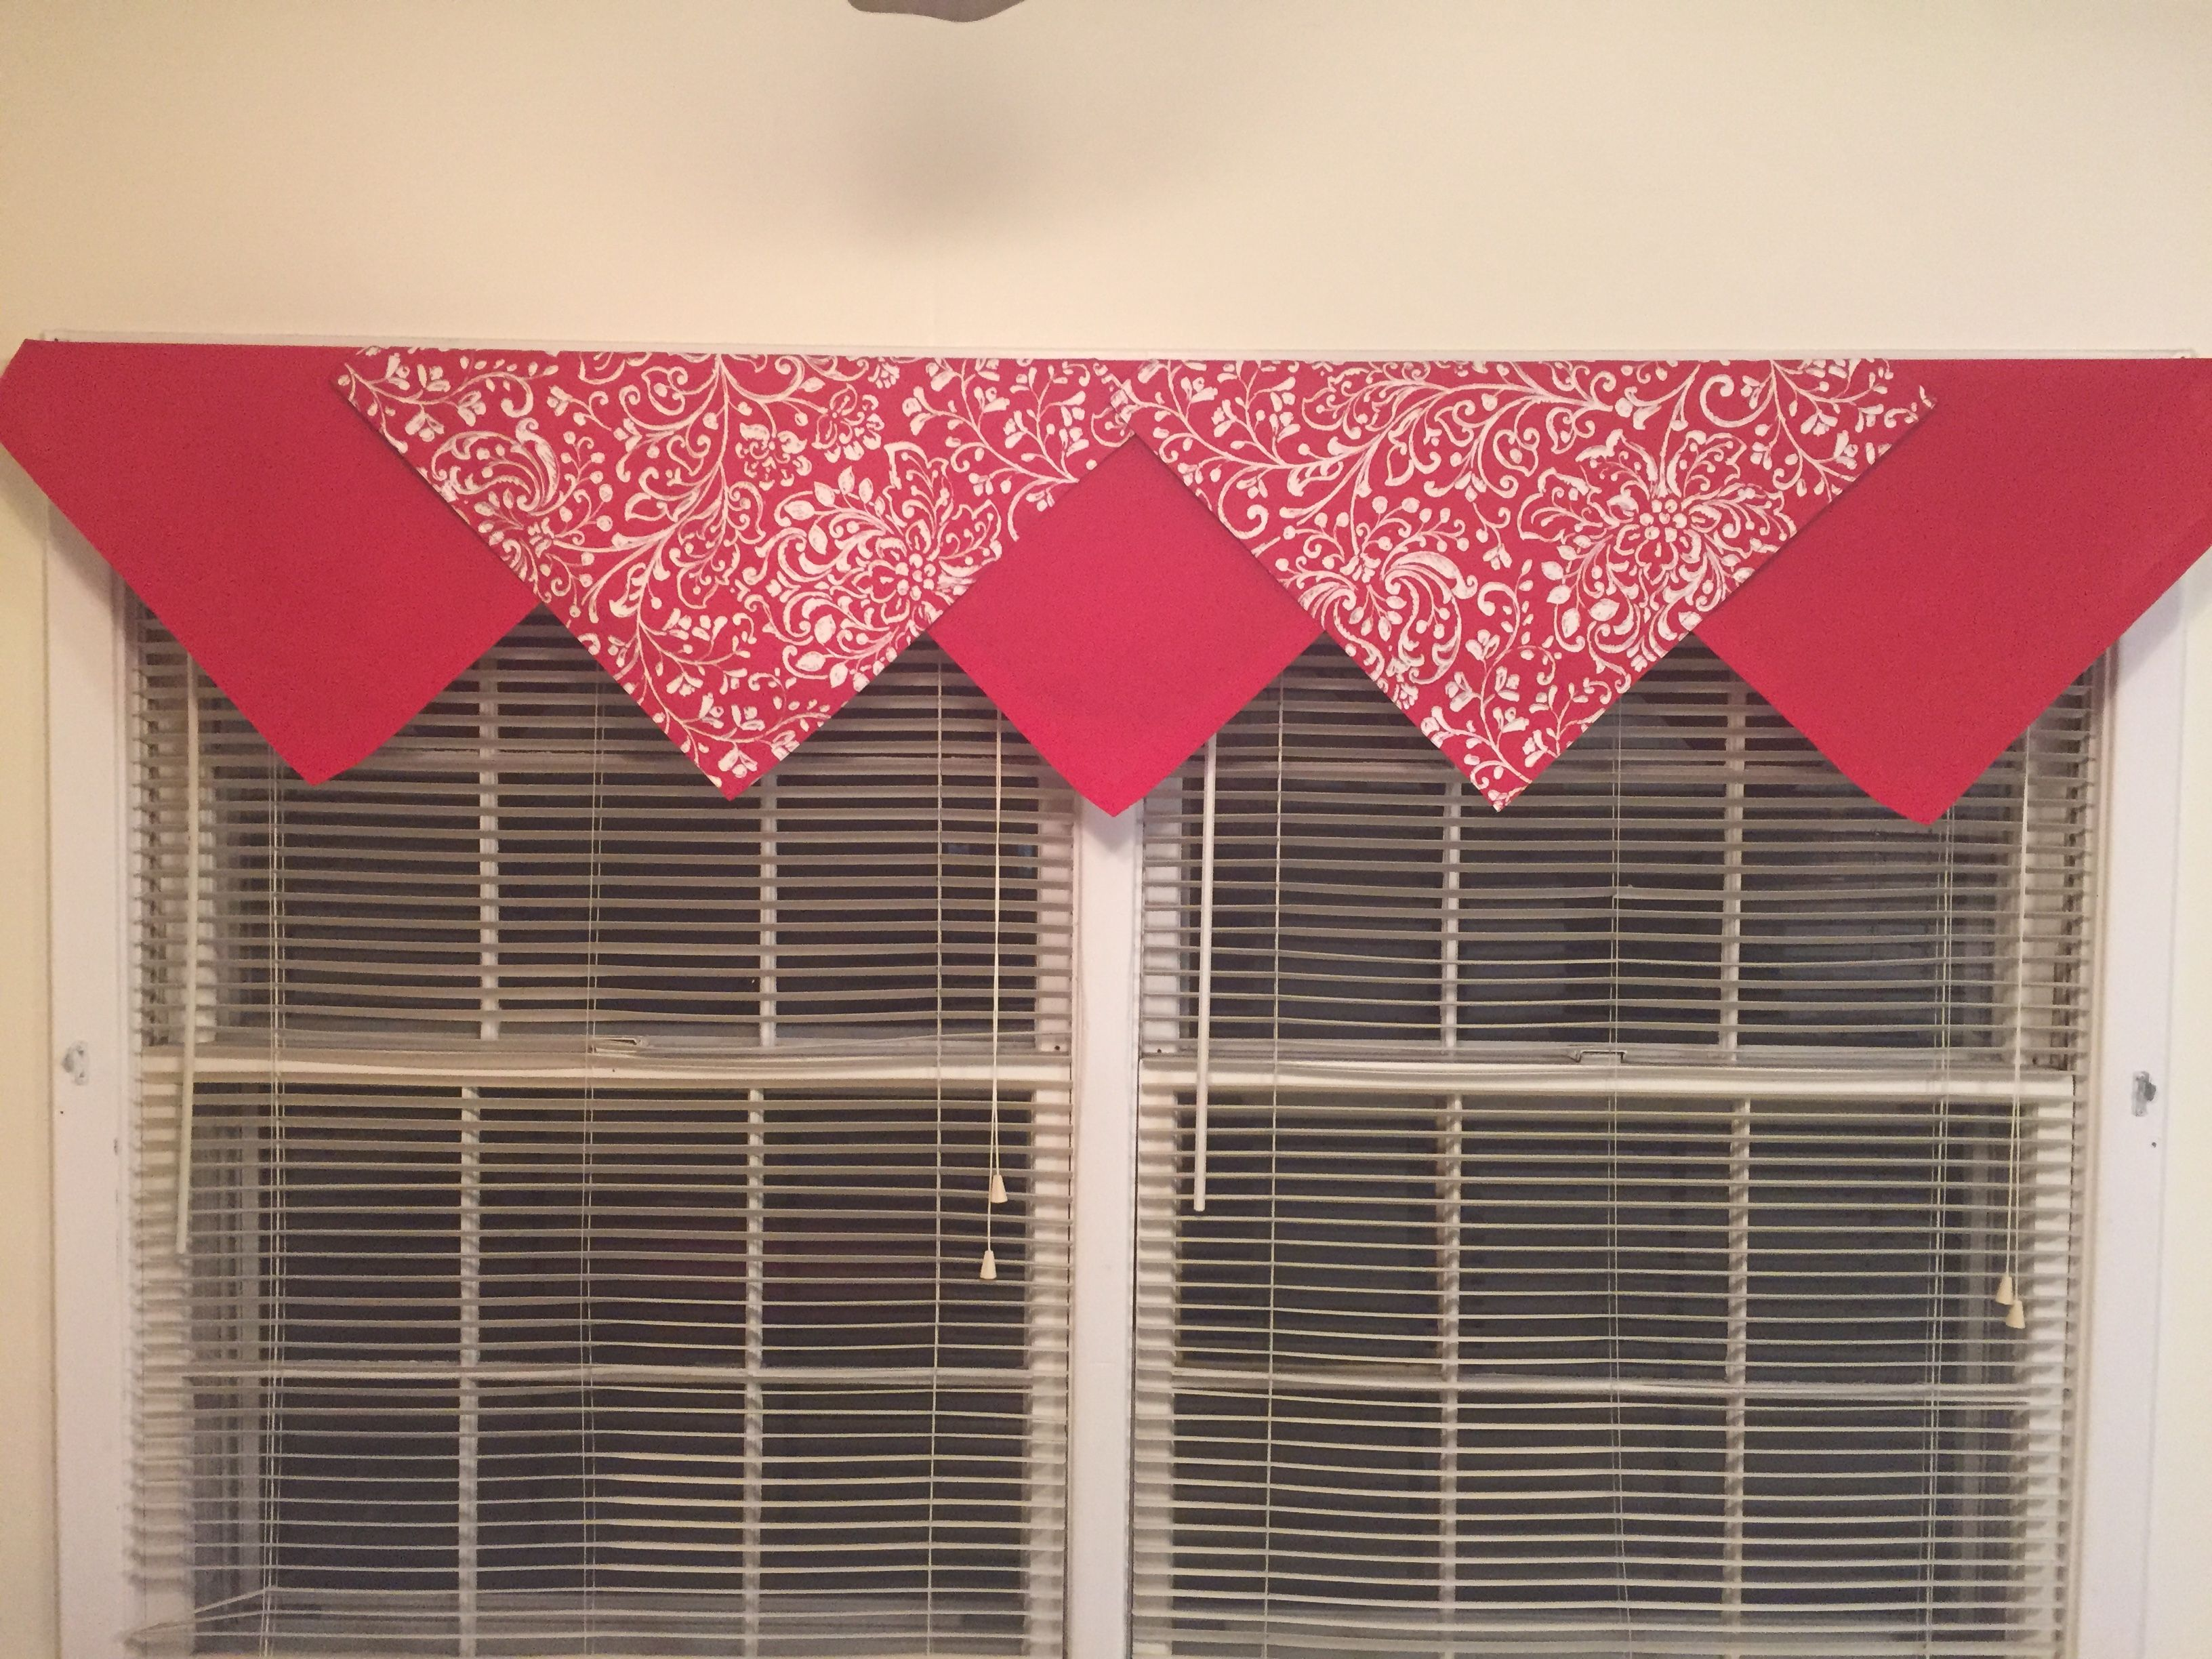 trends decoration and kitchen valances of french window sheer decorative awesome tfile valance picture styles windows lace christmas curtains floral appealing for